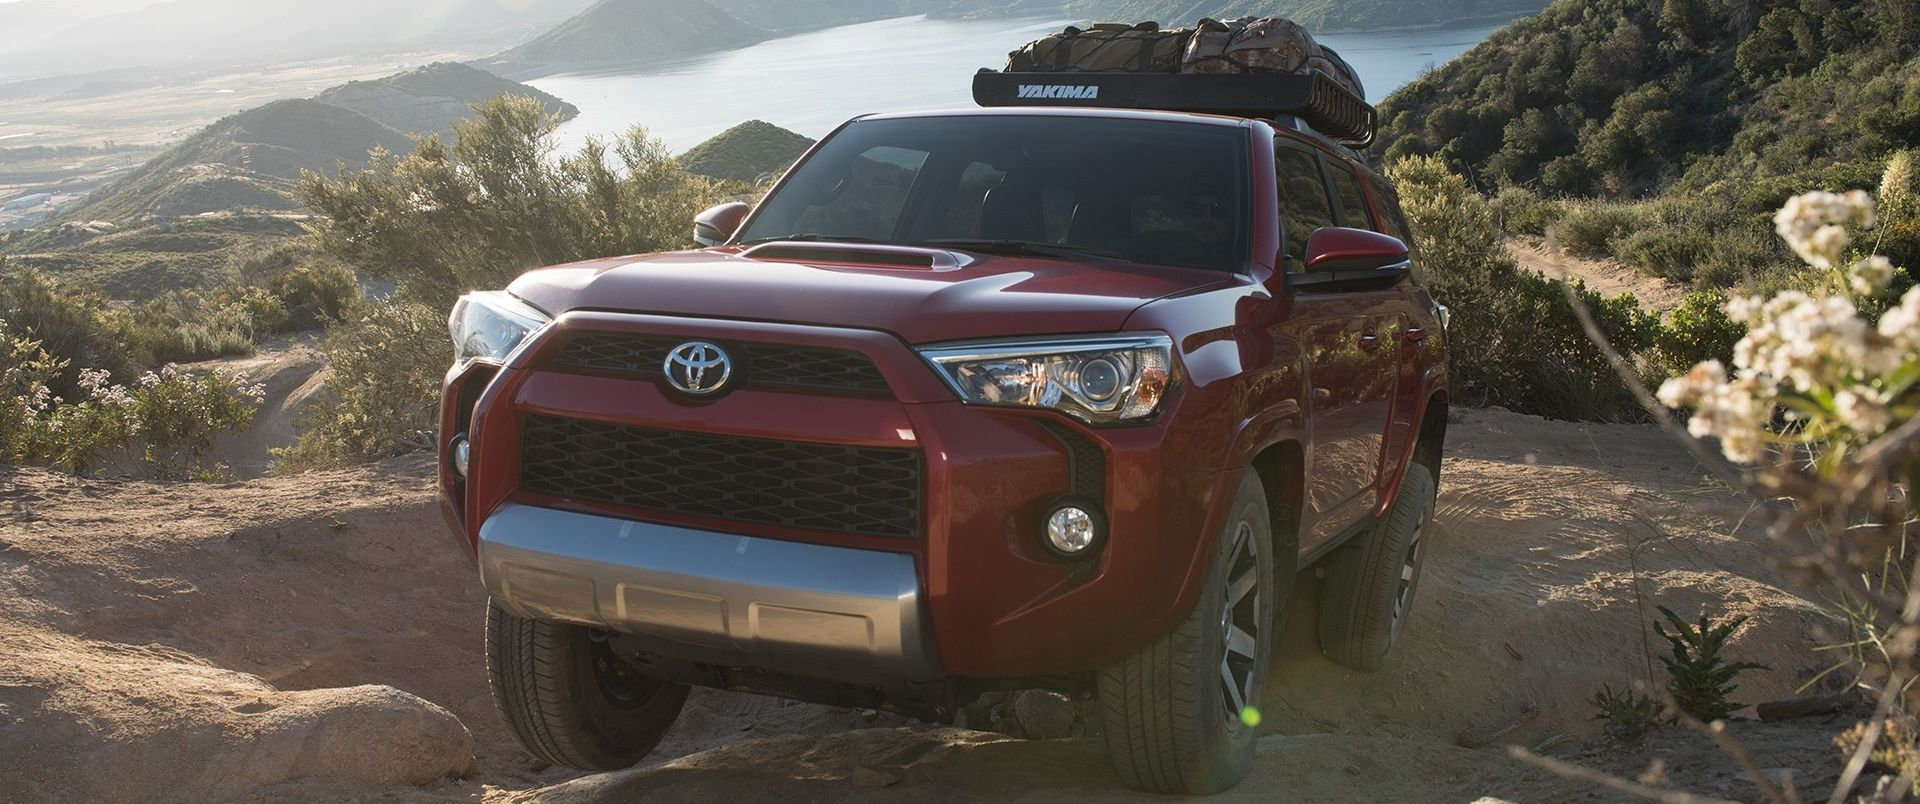 2018 Toyota 4Runner Financing near Byron, IL